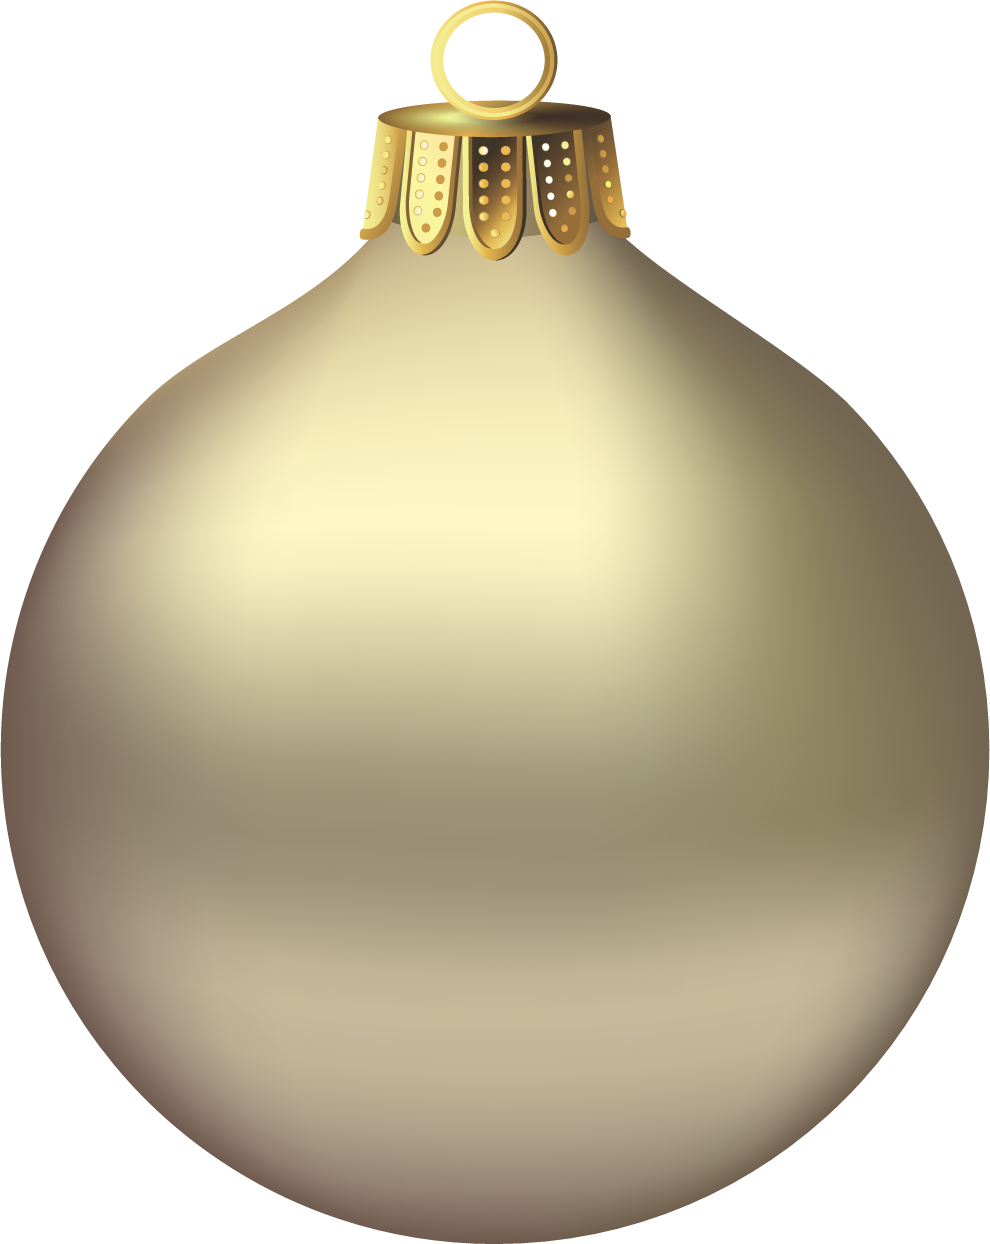 Clipart for christmas ornaments.